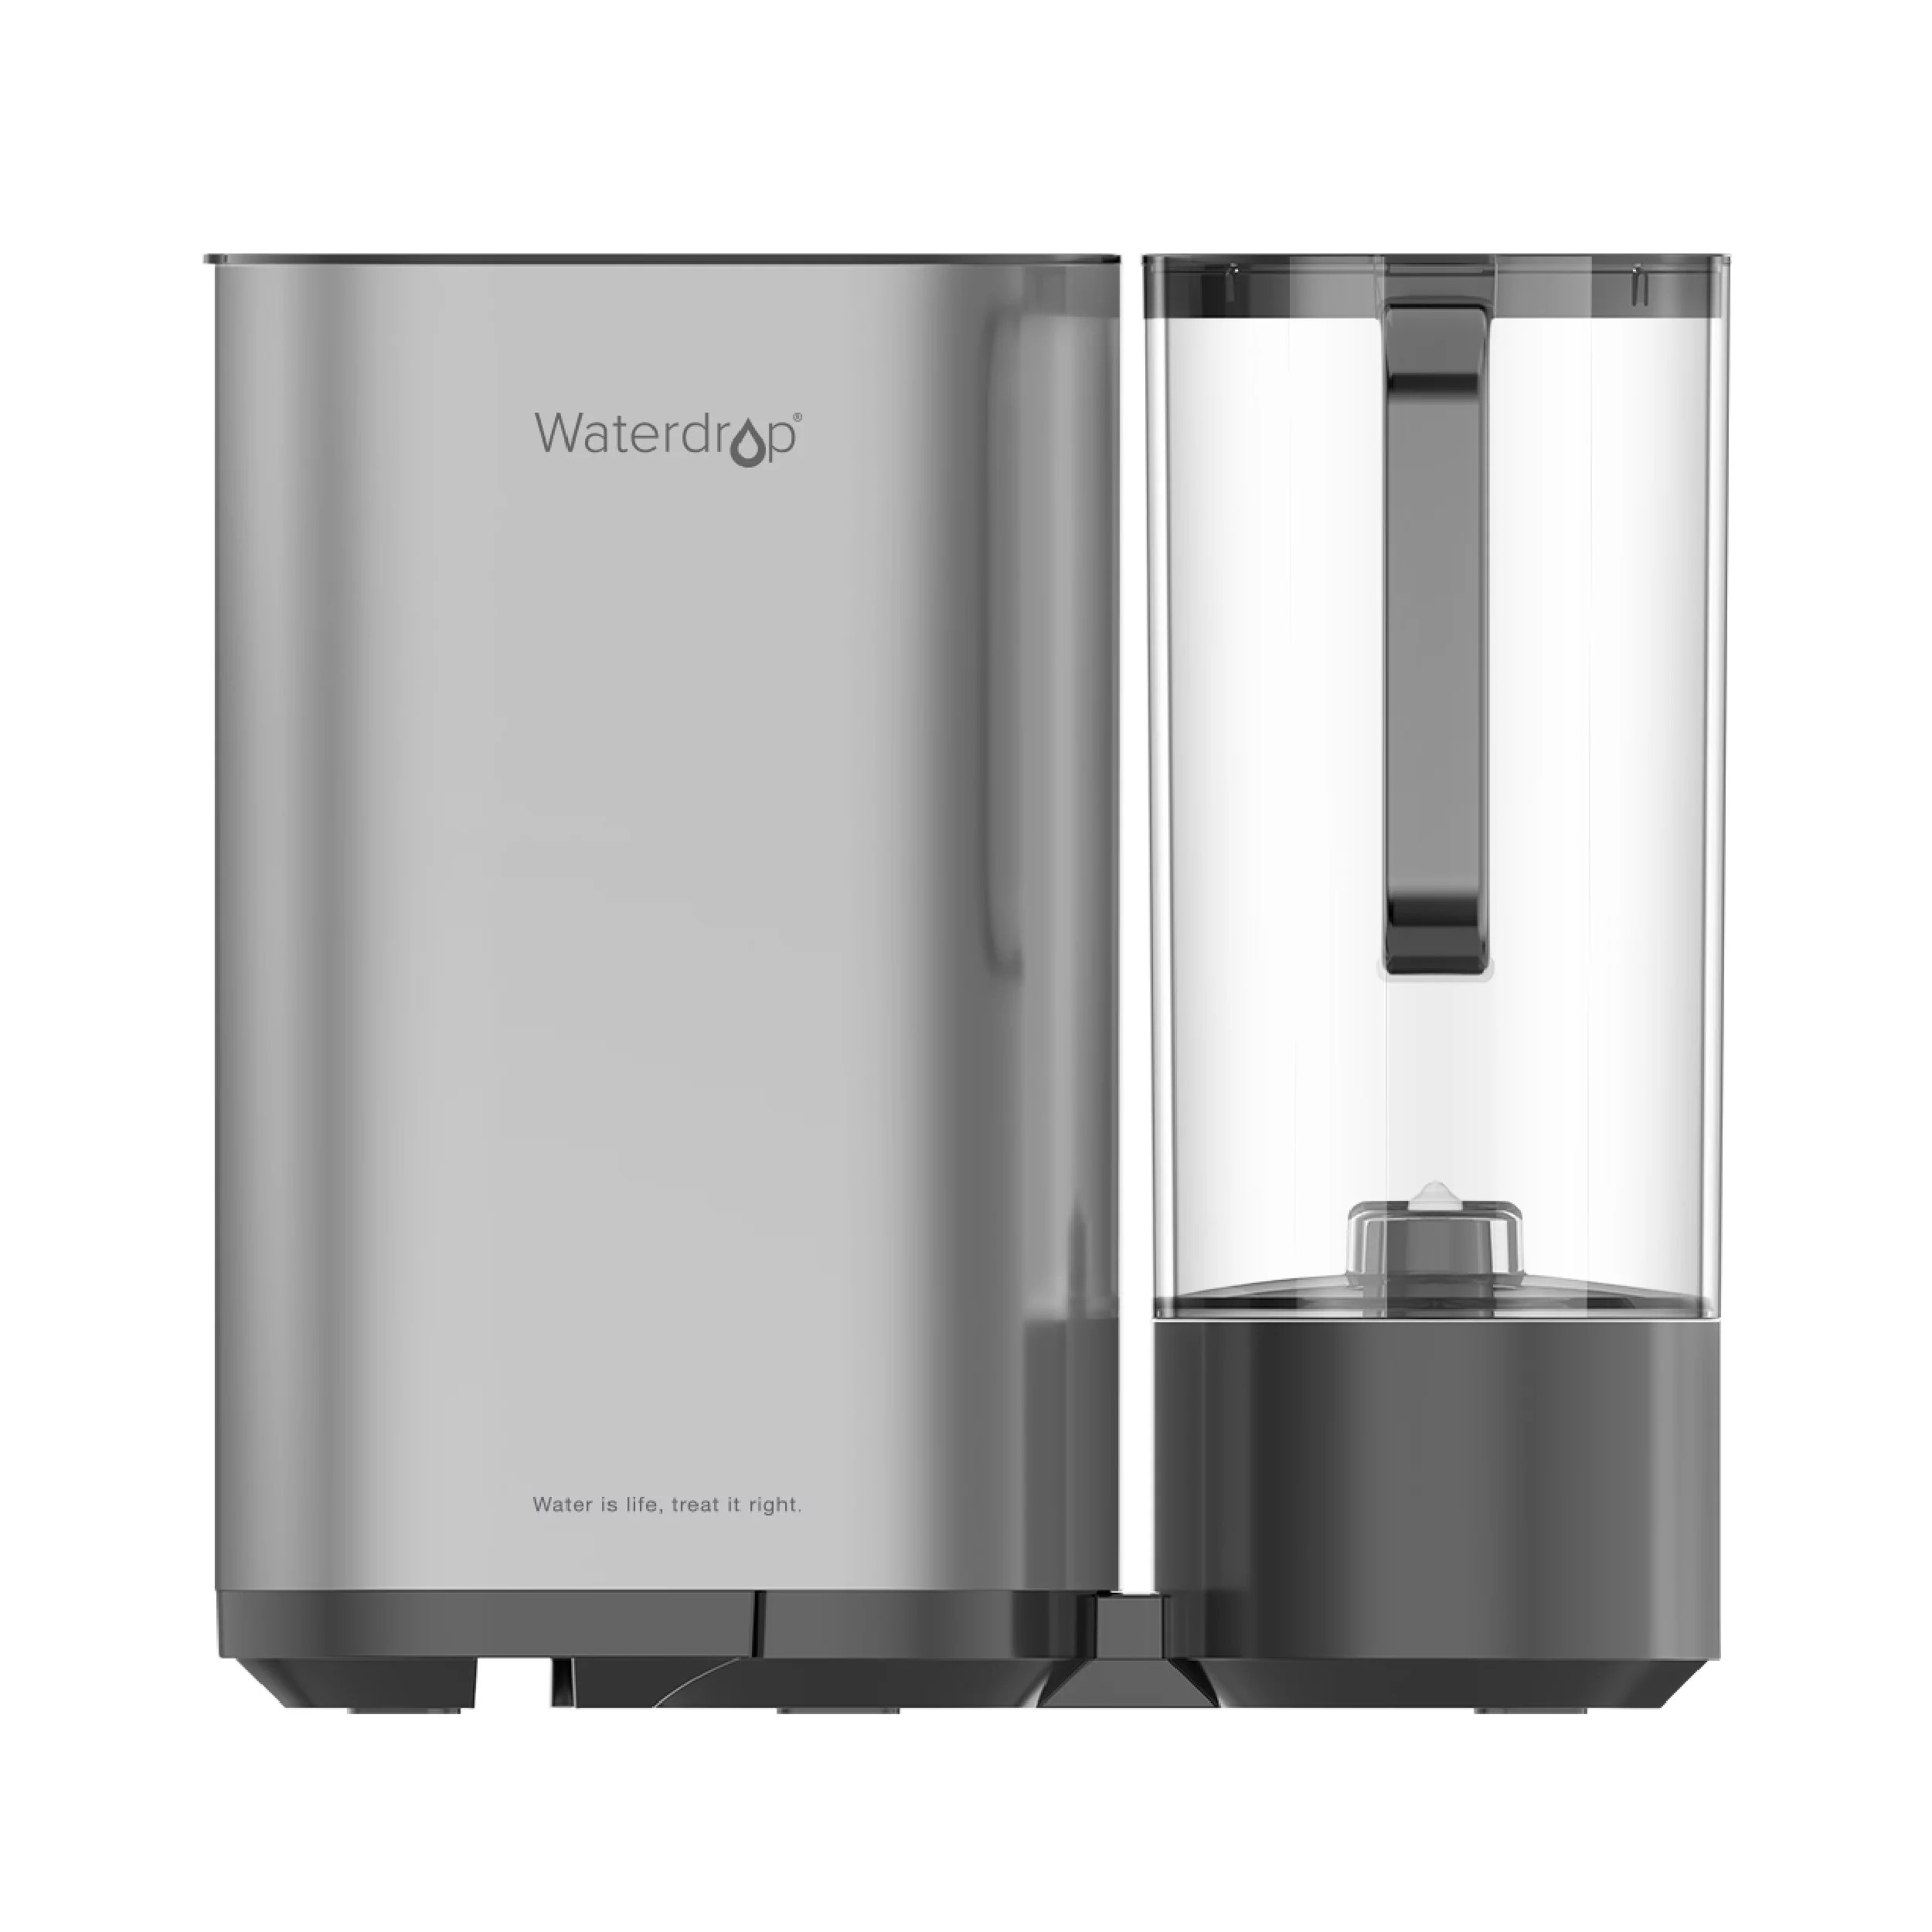 Waterdrop Countertop Ro Reverse Osmosis Drinking Water Filtration System With Portable Water Pitcher 5 Stages All In One Ro Water Filter Tds Reduction Tankless No Electricity No Pump Gray Walmart Com Walmart Com